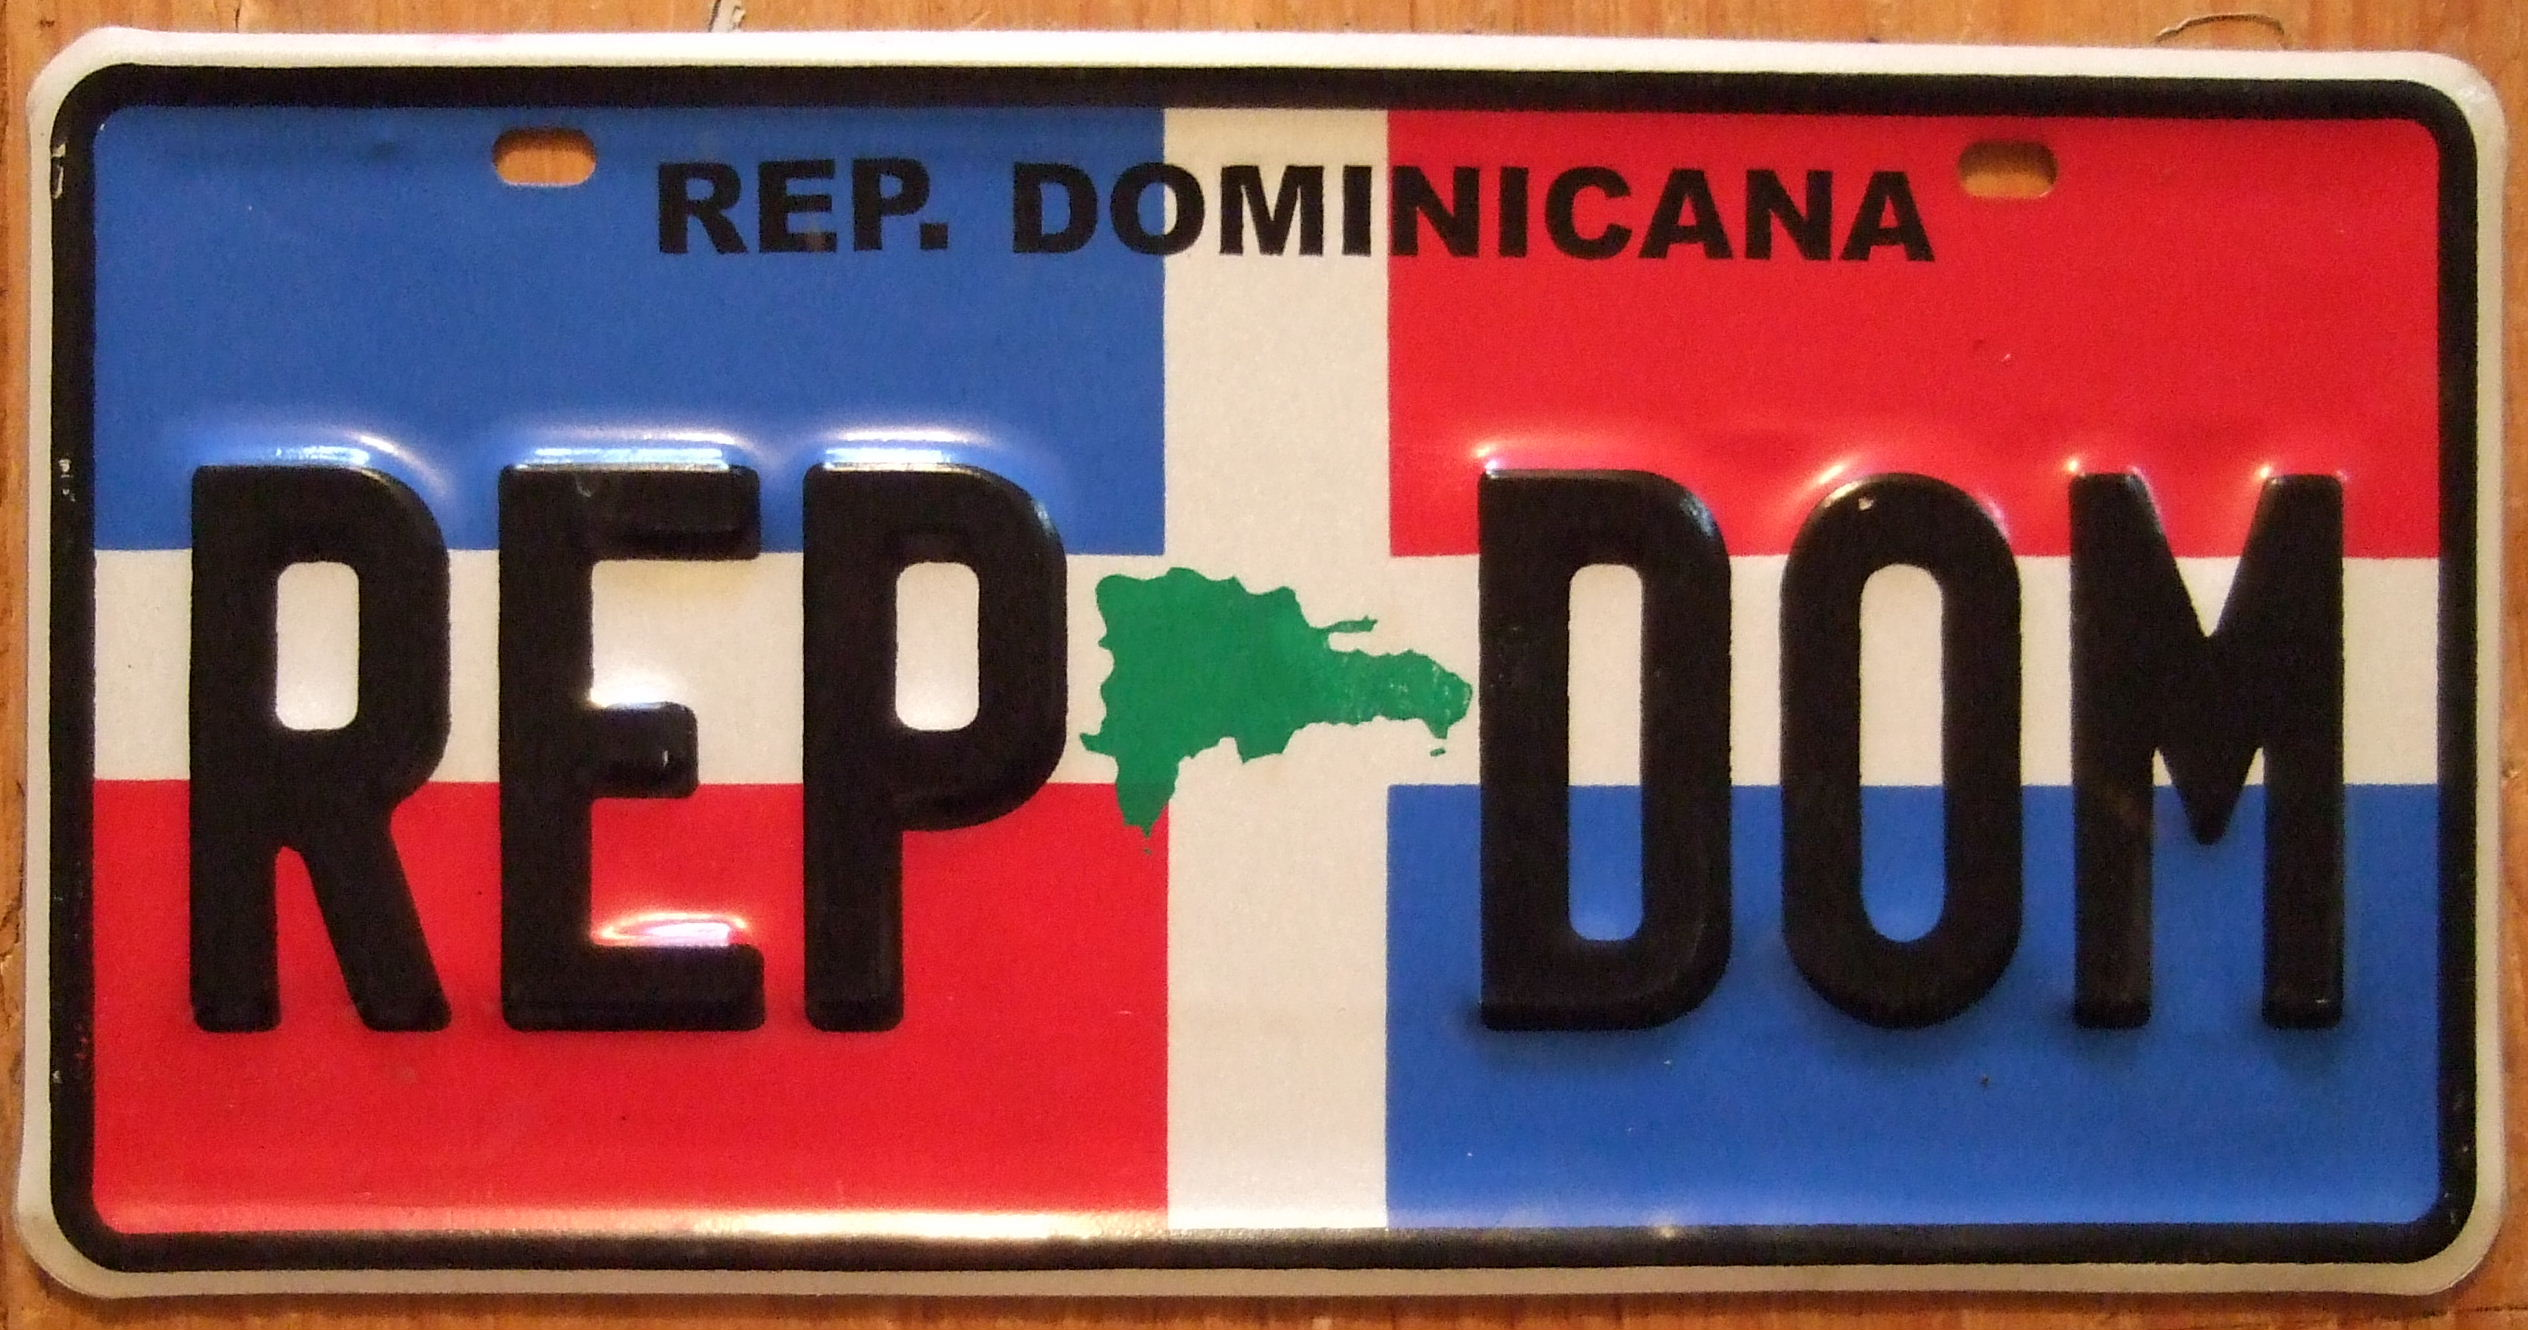 License Plate Size >> File:DOMINICAN REPUBLIC, SOUVENIR LICENSE PLATE 2008 - Flickr - woody1778a.jpg - Wikimedia Commons